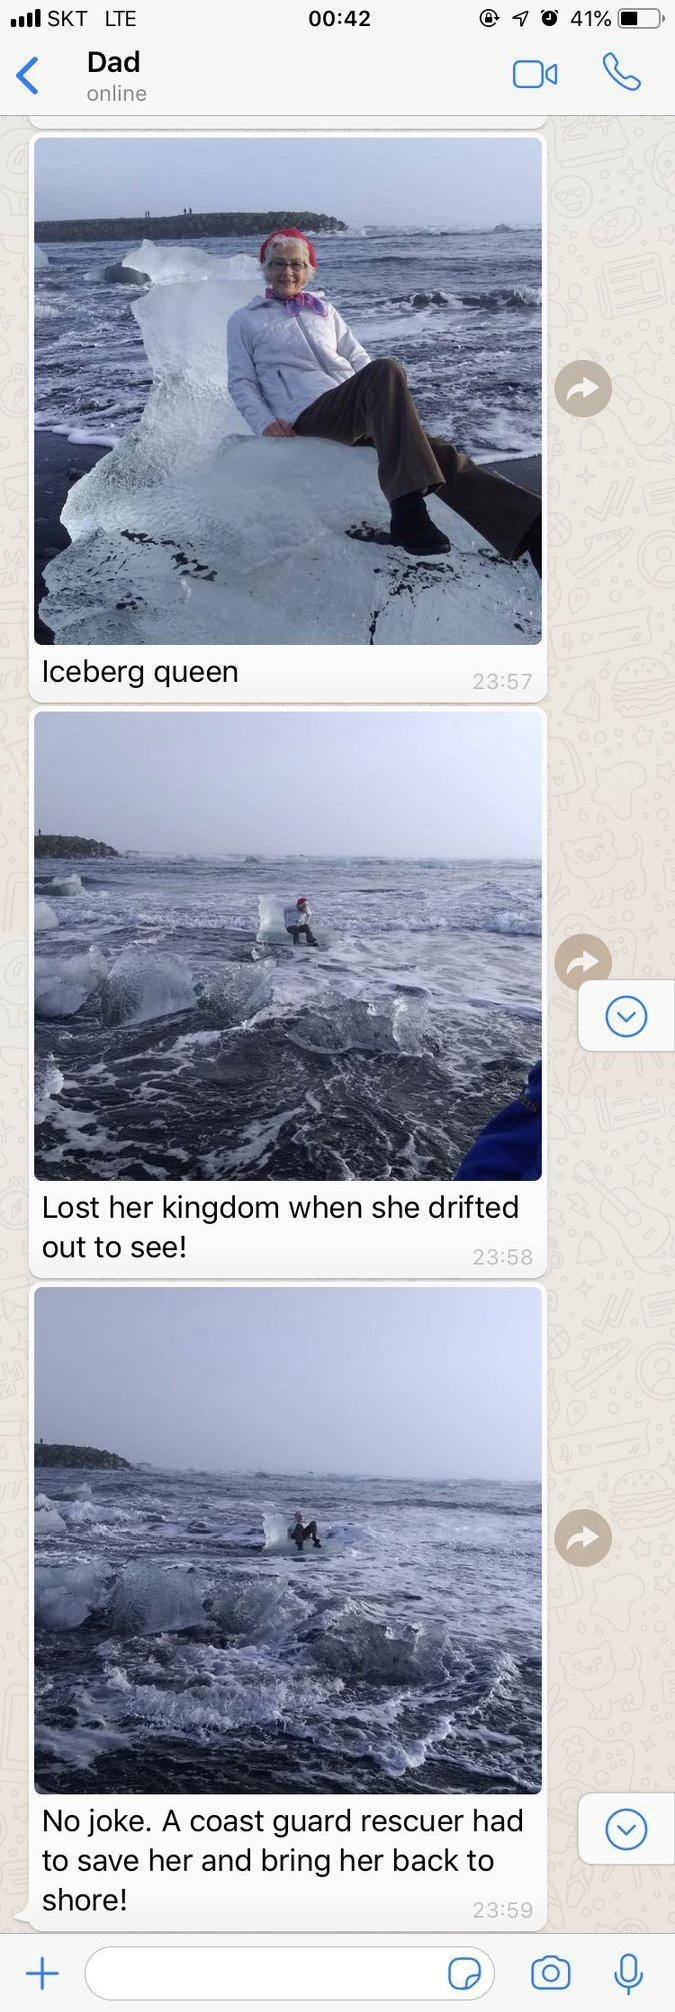 Ocean - l SKT LTE 00:42 41% Dad online Iceberg queen 23:57 Lost her kingdom when she drifted out to see! 23:58 No joke. A coast guard rescuer had to save her and bring her back to shore! 23:59